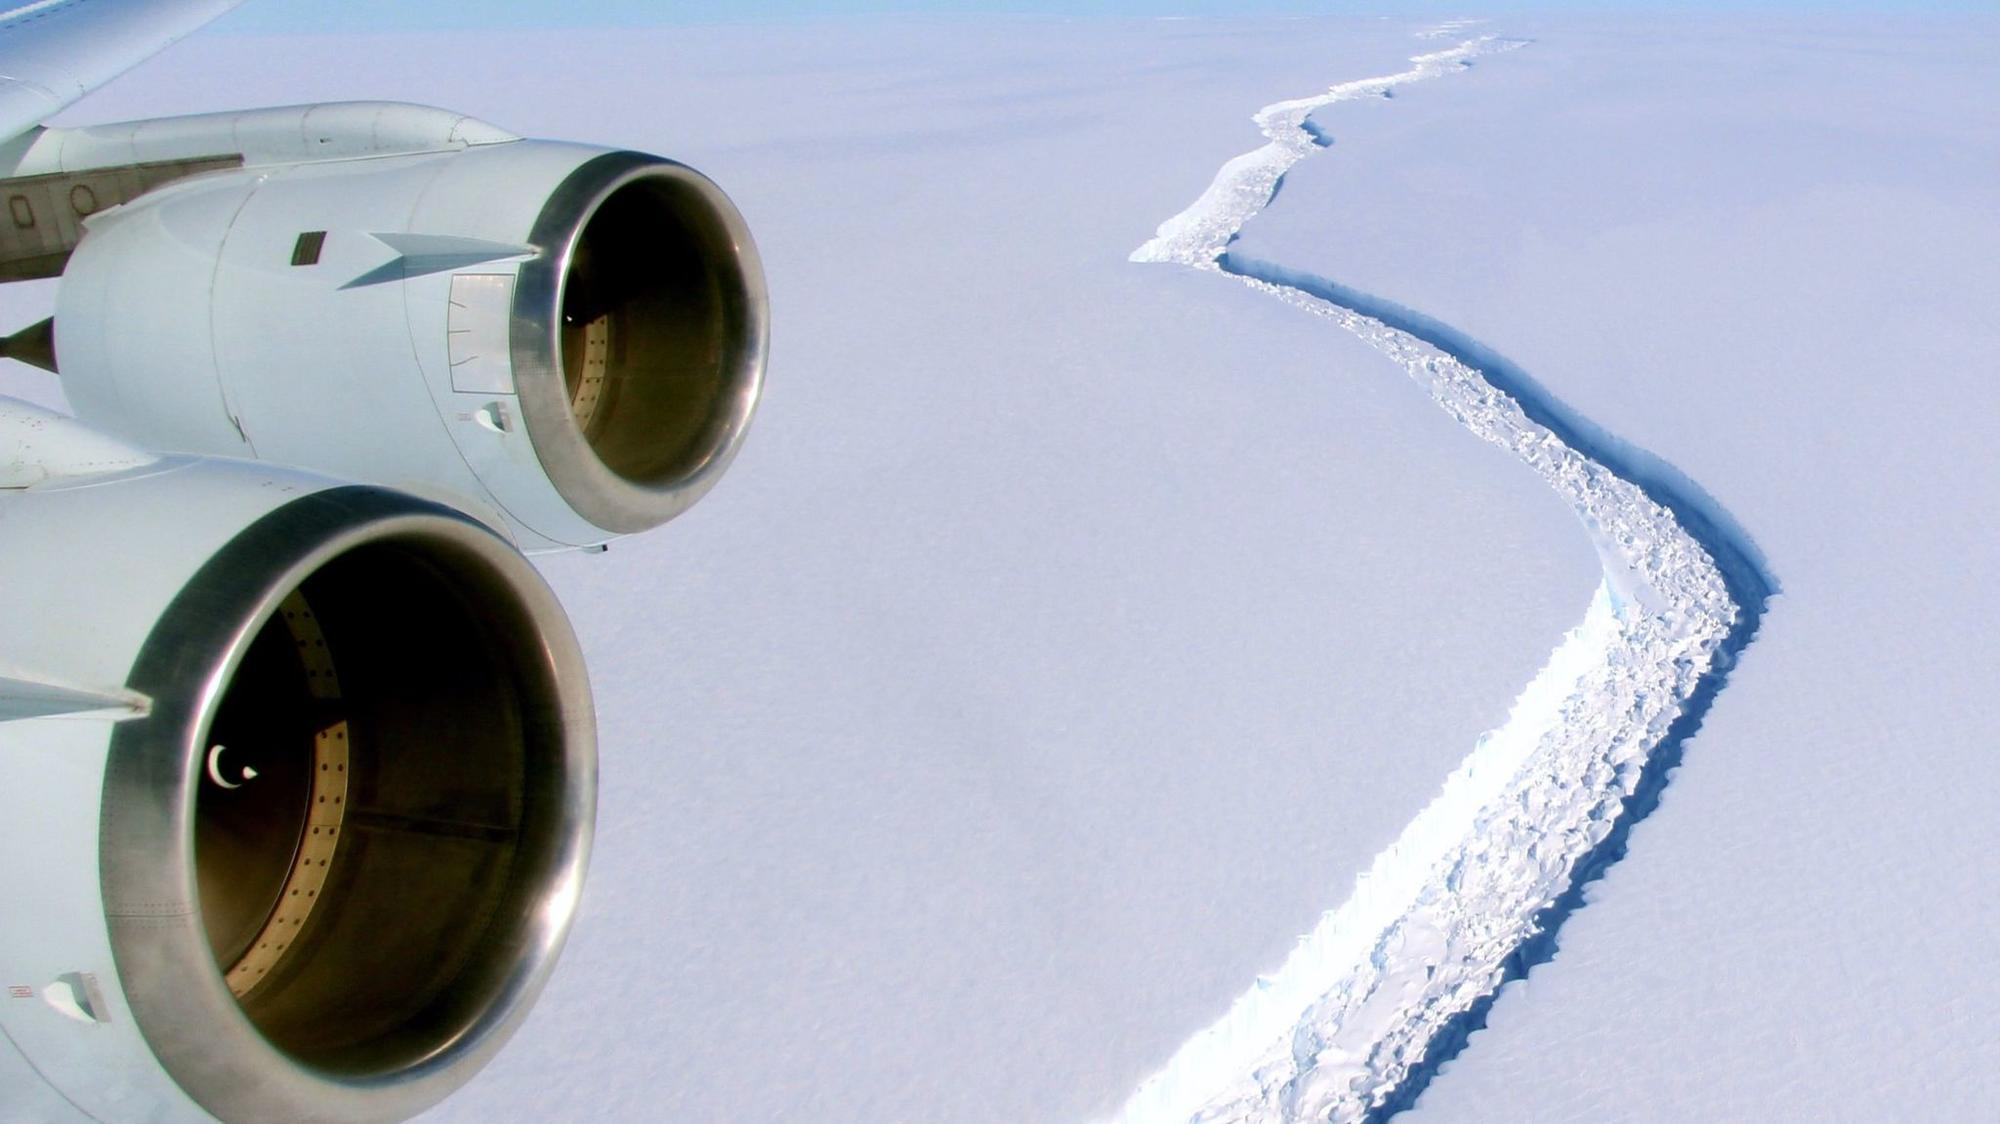 An iceberg the size of Delaware just broke off the Antarcticaice shelf